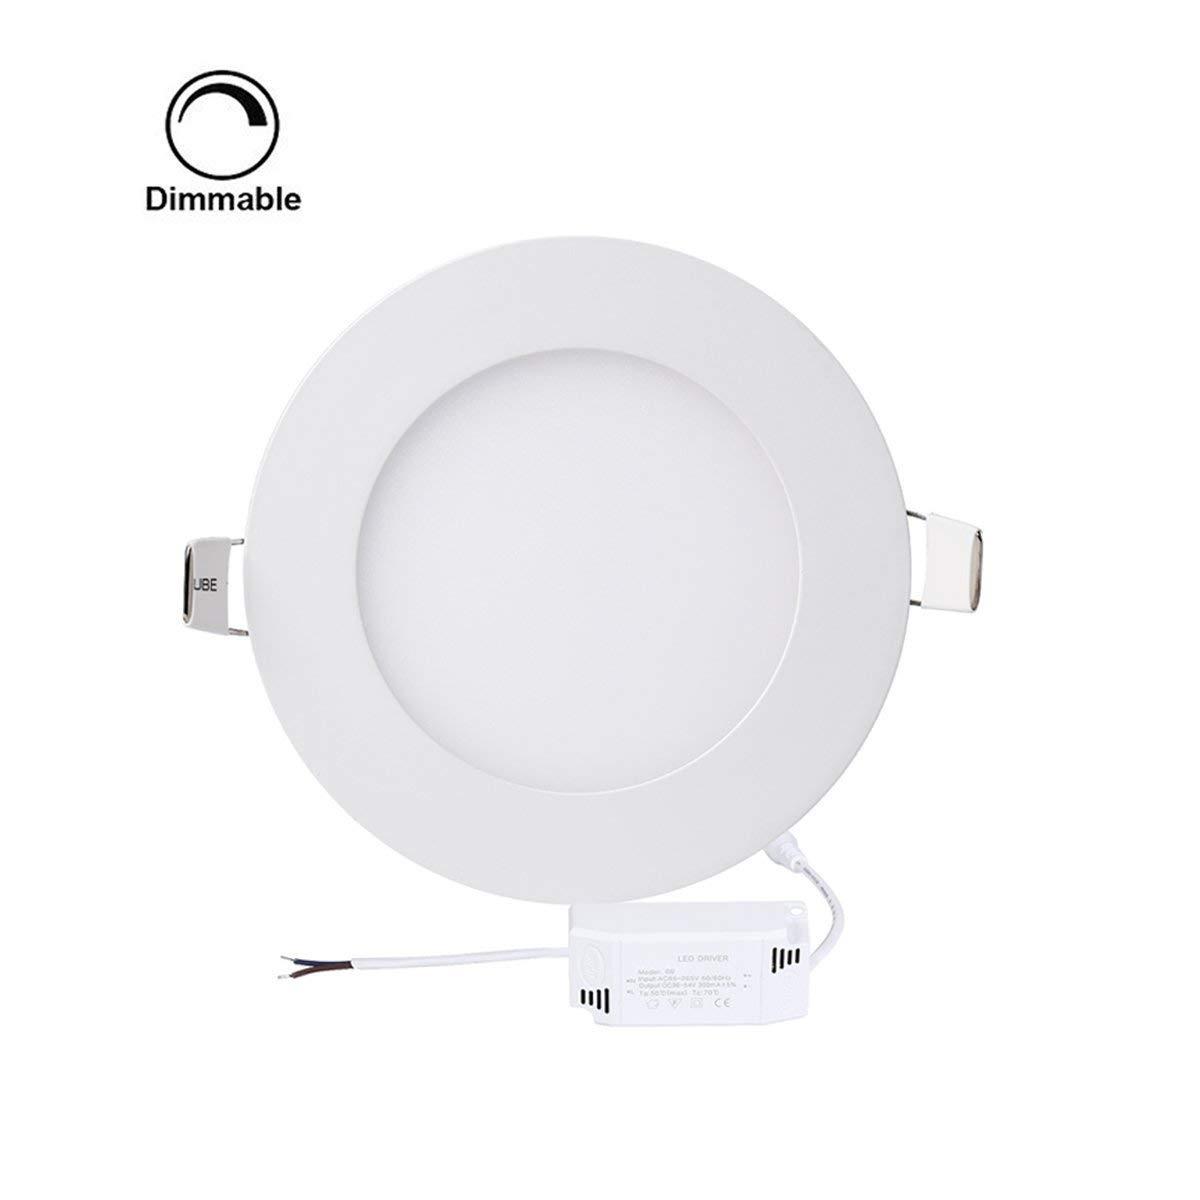 Pack of 5 Units Dimmable Round LED Panel Light,Ultra-thin Recessed Ceiling Light,Round led Flat panel light Downlight with 120V Isolation Driver for Home, Office, Commercial Lighting(12W, 4000K)